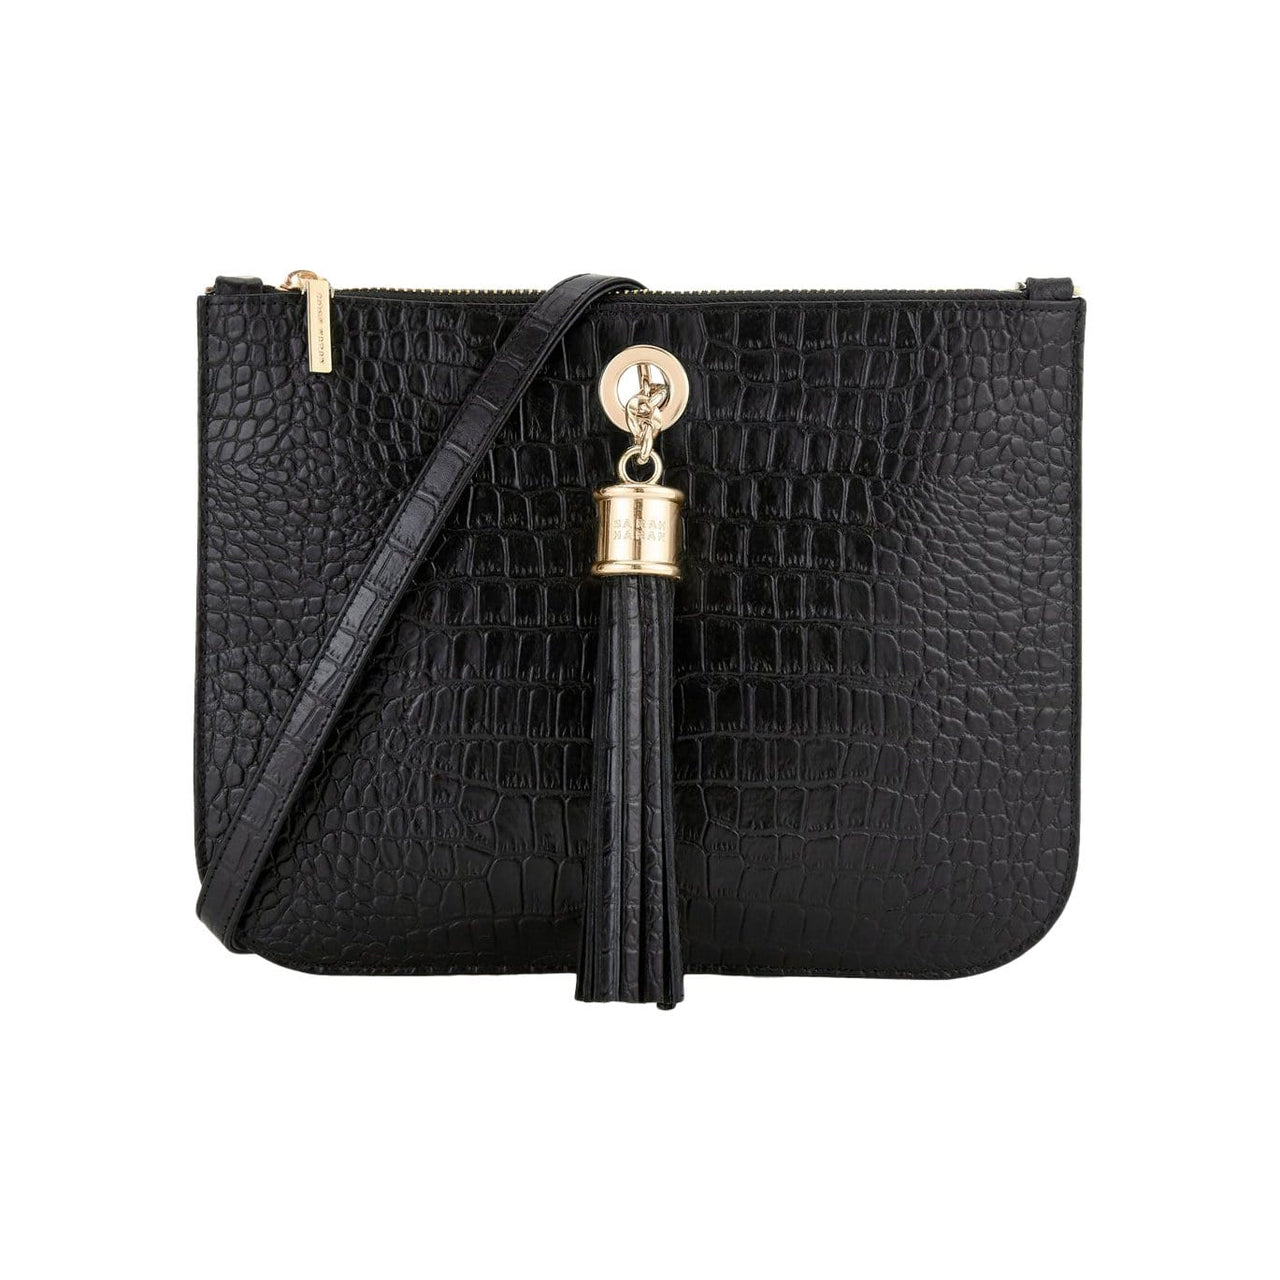 Sarah Haran Shoulder, Crossbody & Belt Bags Black Moc Croc / Gold Ivy Mini Bag - Leather Strap